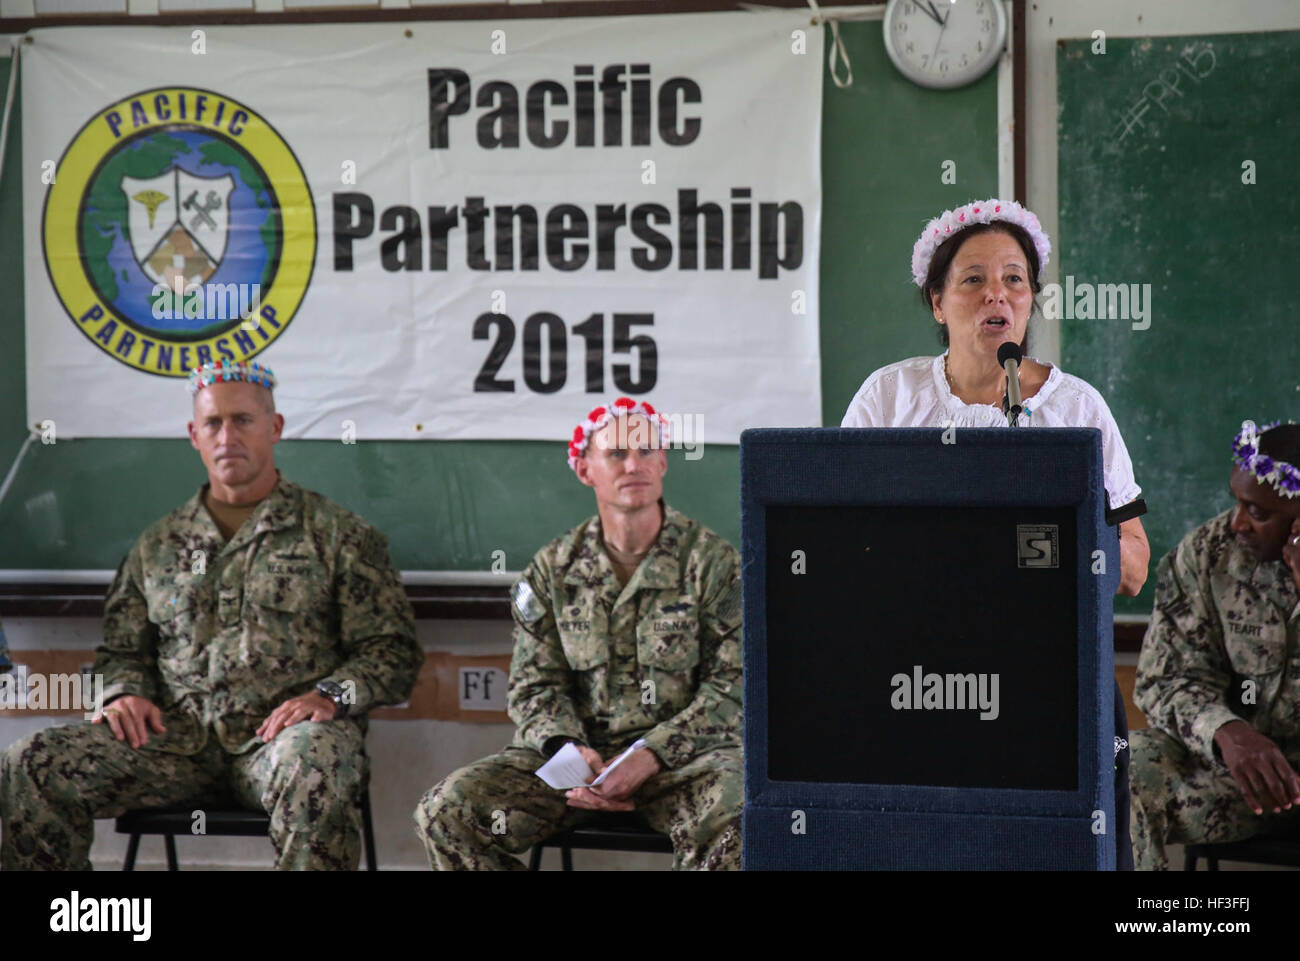 U.S. Ambassador to the Federated States of Micronesia Doria Rosen thanks members of Pacific Partnership 2015 after Stock Photo